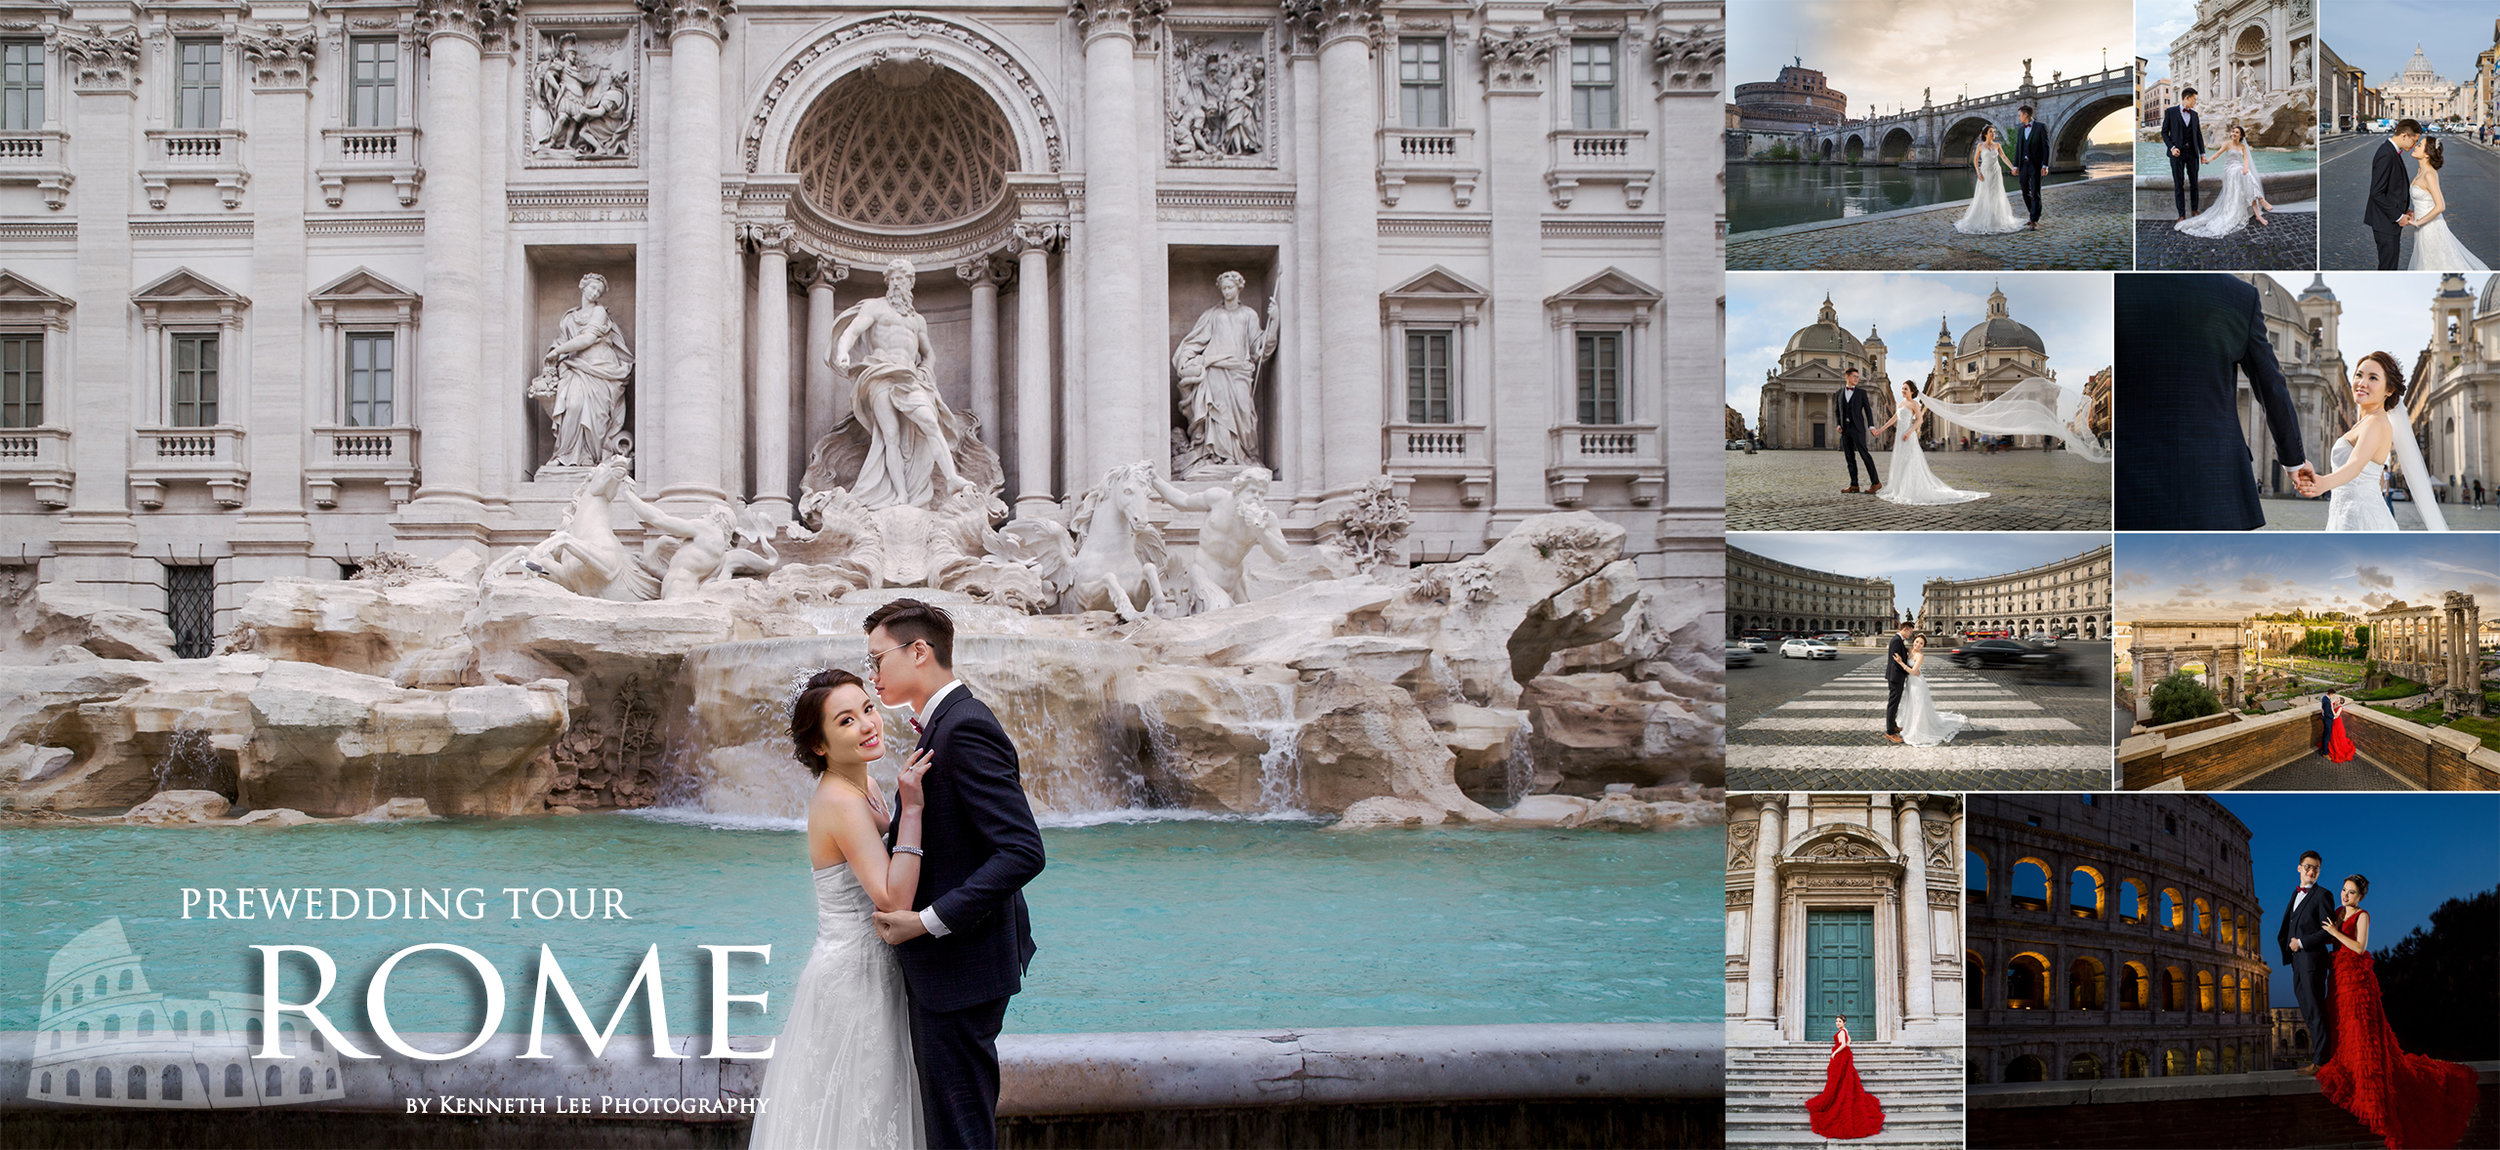 rome_prewedding_photo_tour